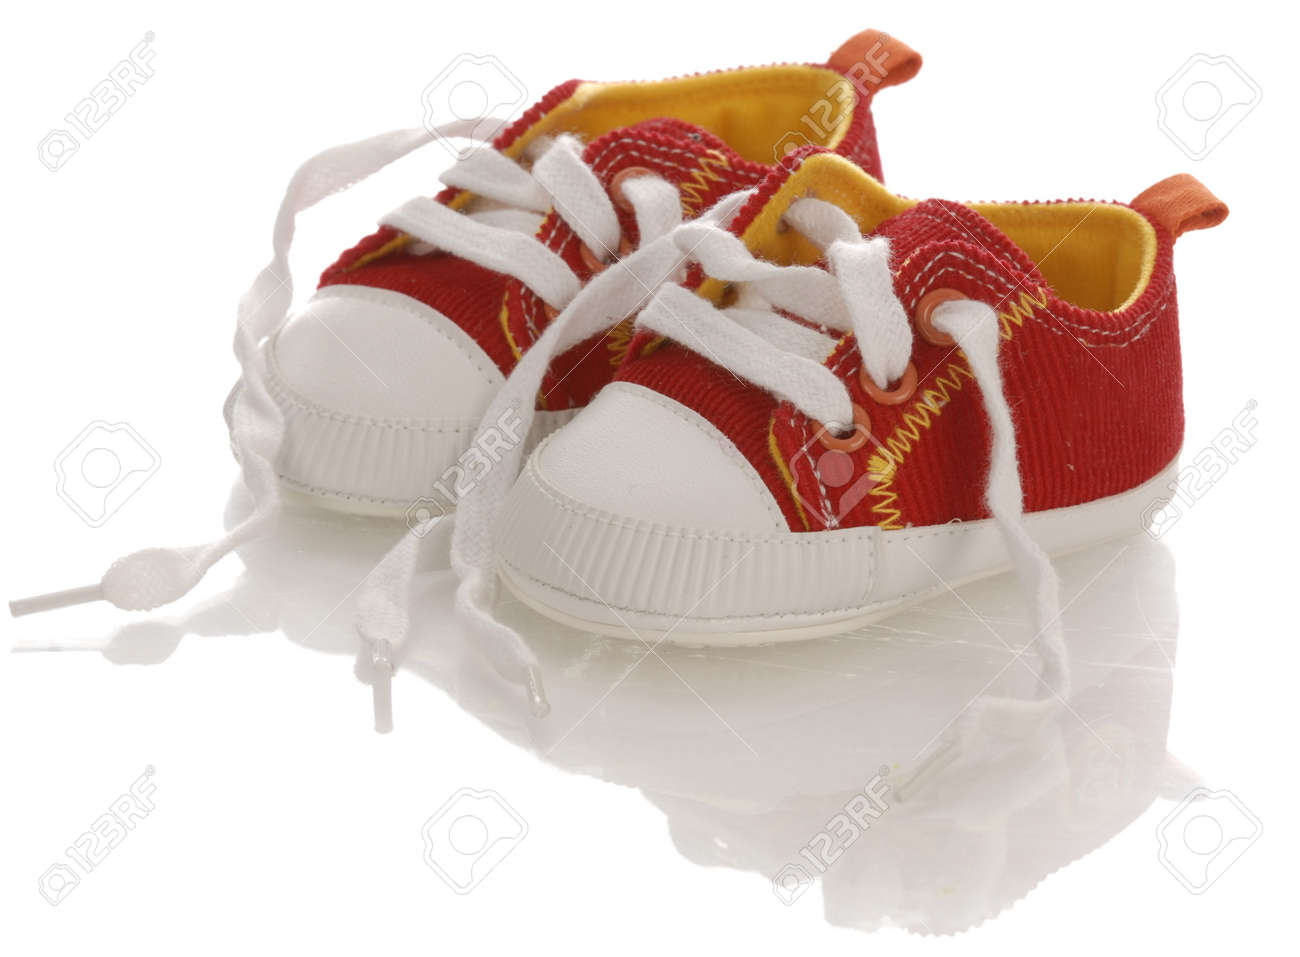 Red Baby On Infant Running Shoes With